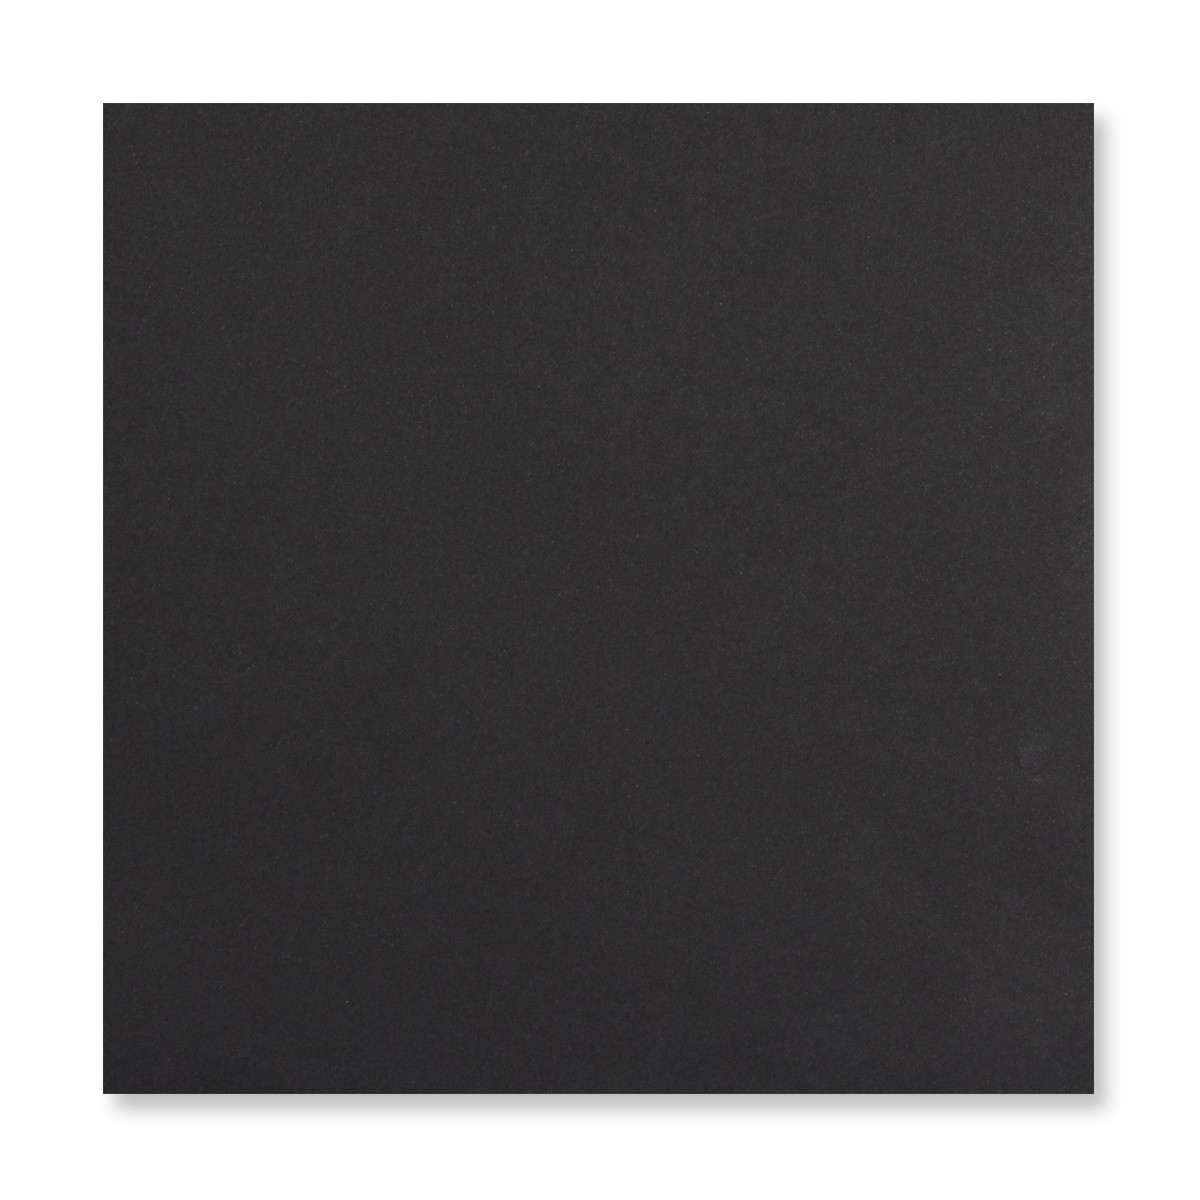 BLACK 155mm SQUARE ENVELOPES 120GSM